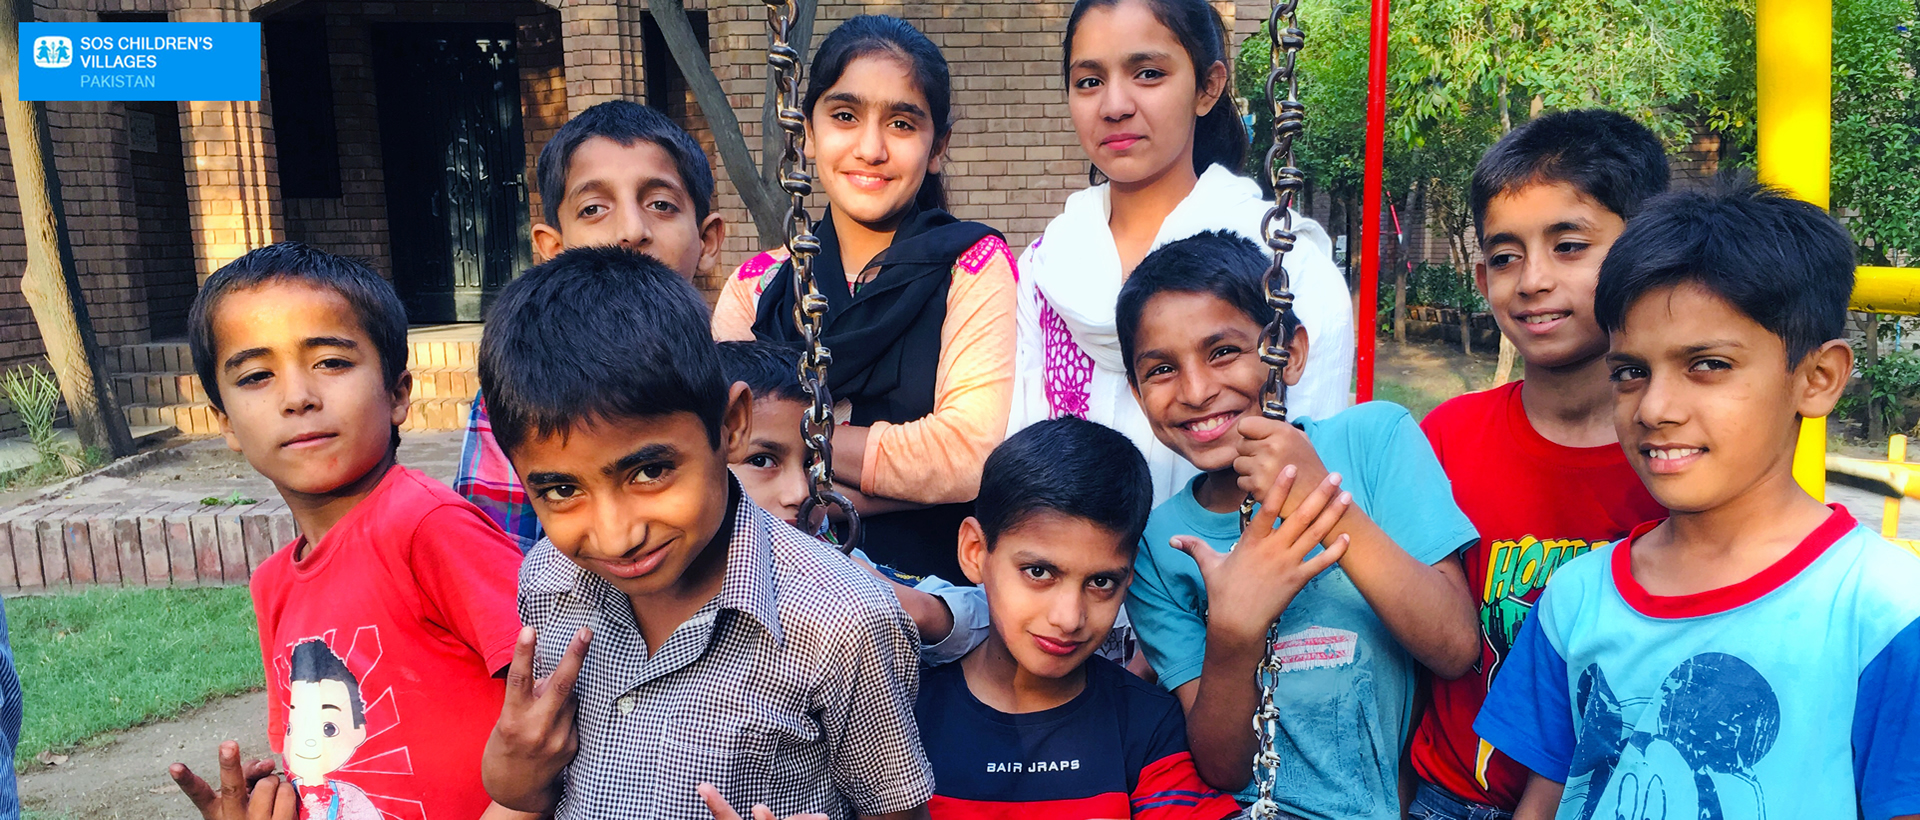 SOS Children's Villages Pakistan - A loving home for every child